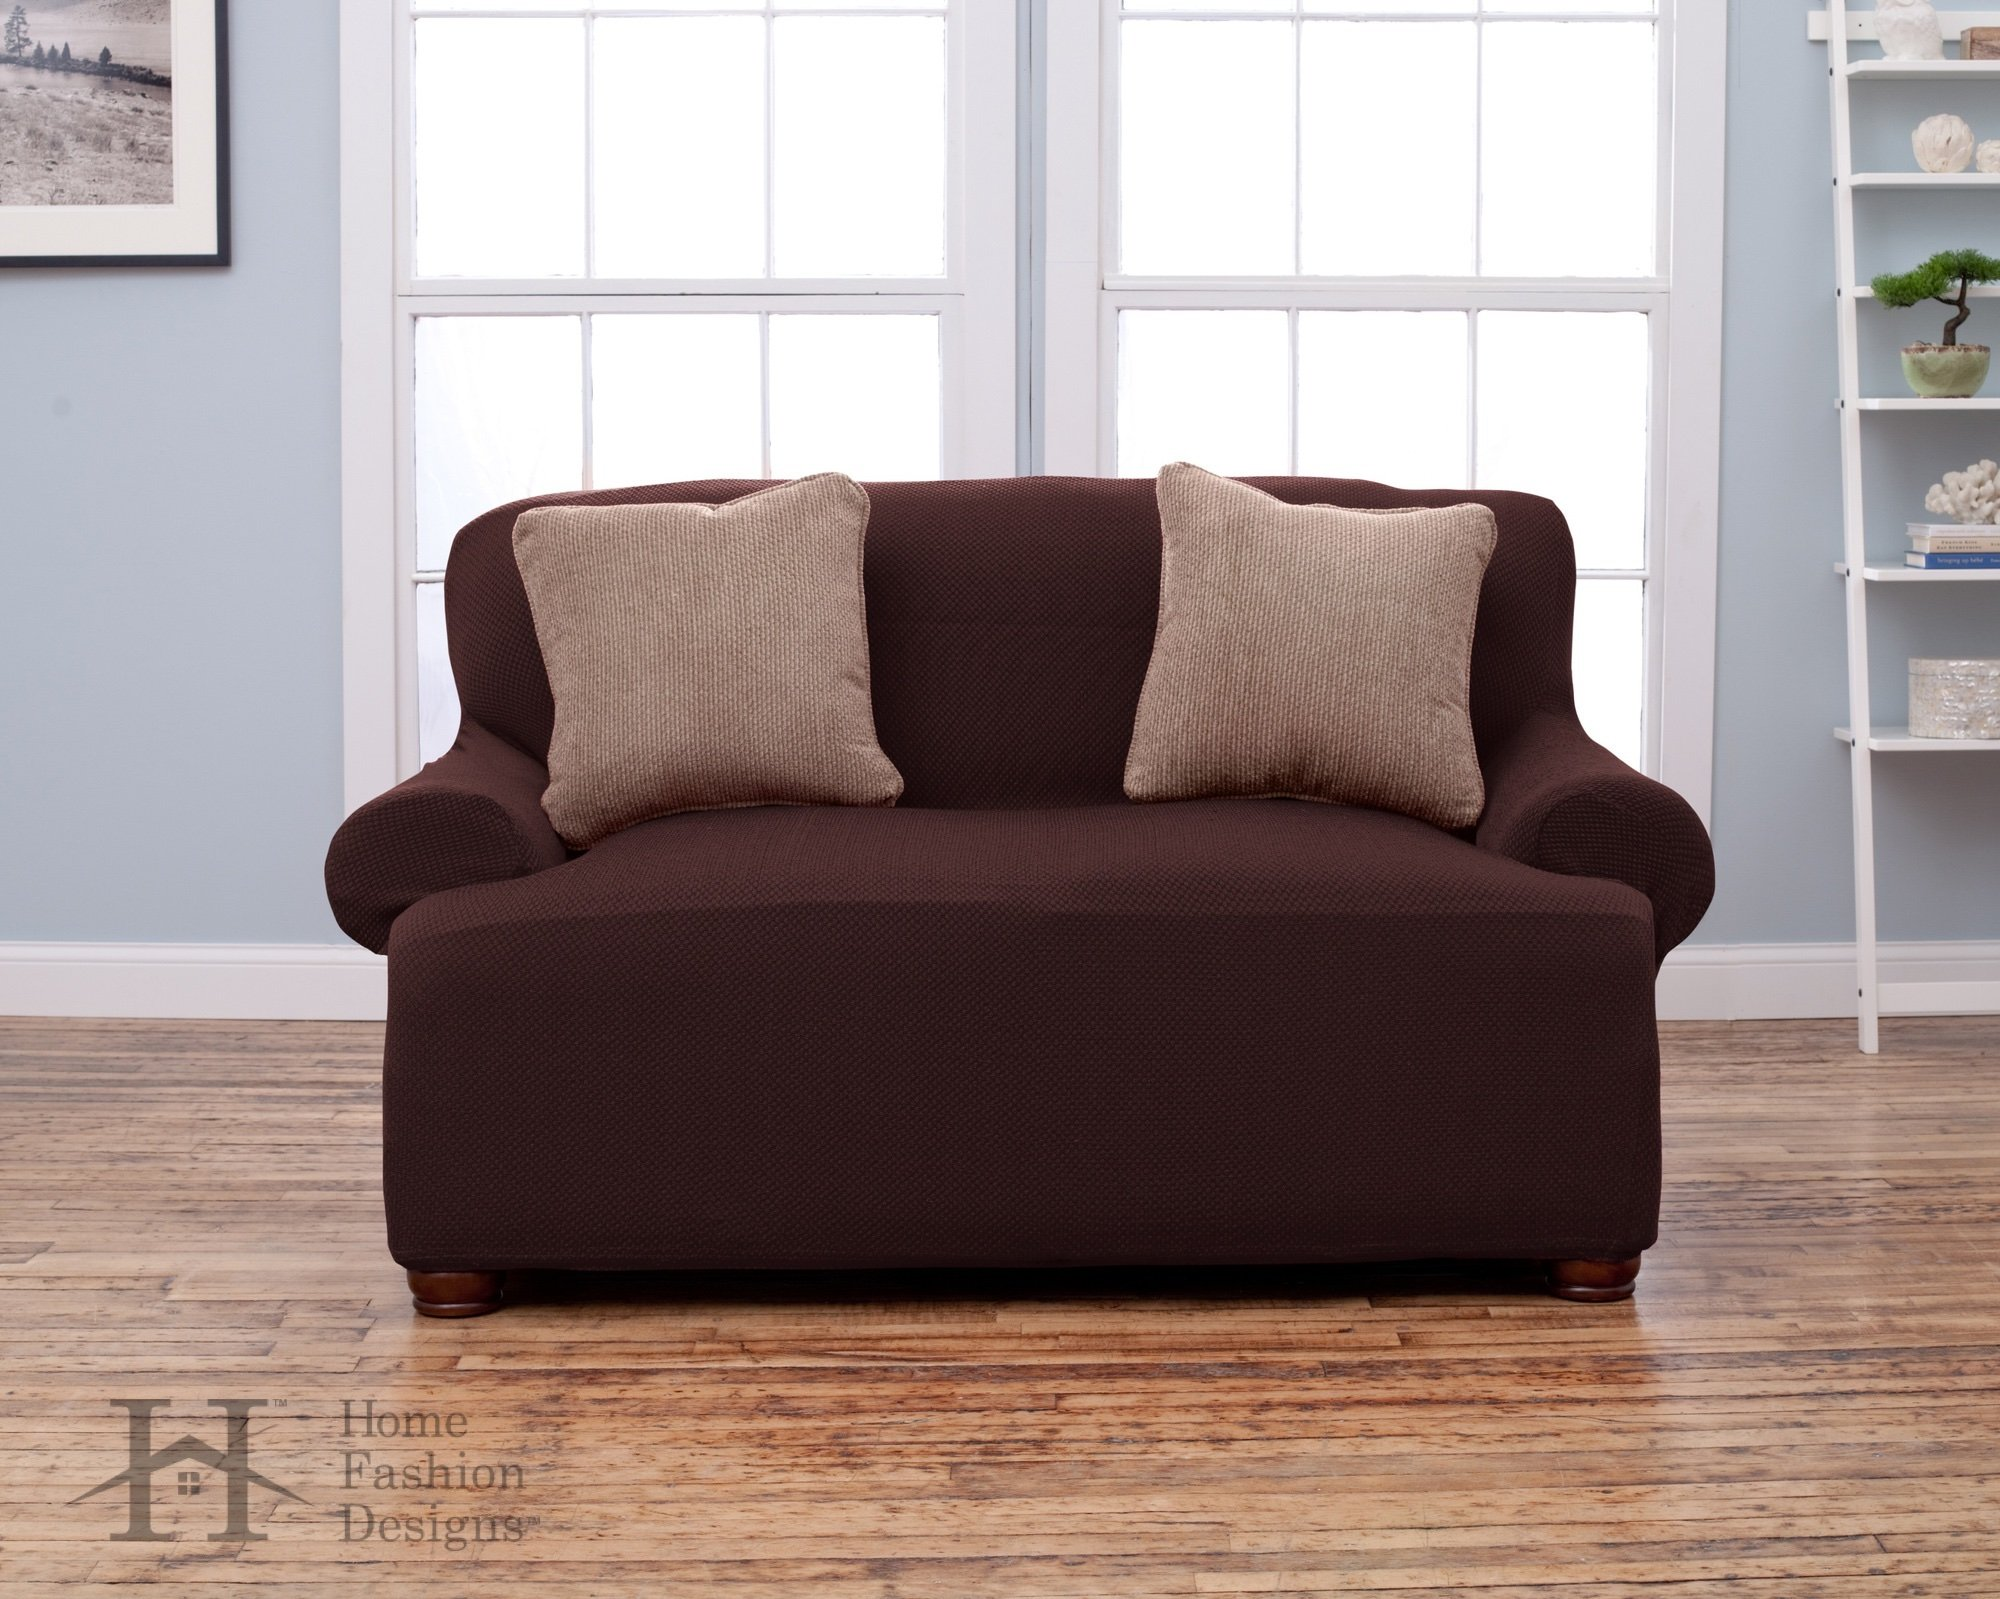 Savannah Collection Basic Strapless Slipcover. Form Fit, Slip Resistant, Stylish Furniture Shield / Protector Featuring Lightweight Fabric. By Home Fashion Designs Brand. (Loveseat, Chocolate)